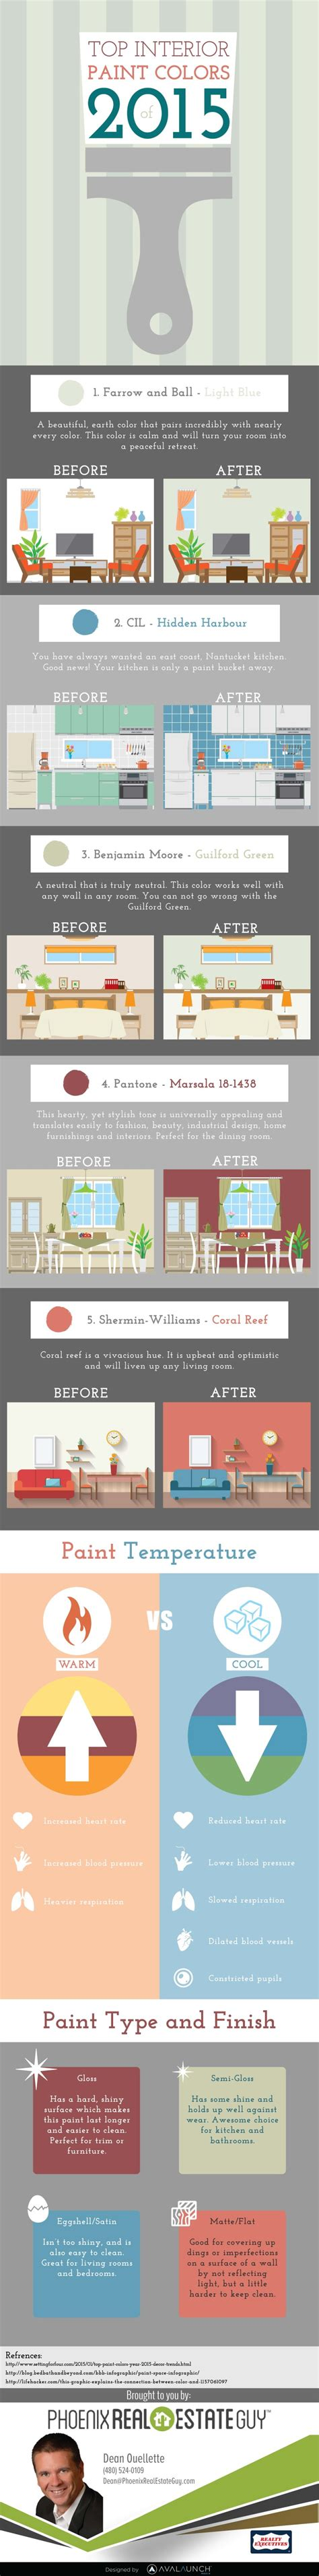 popular interior paint colors when selling your home